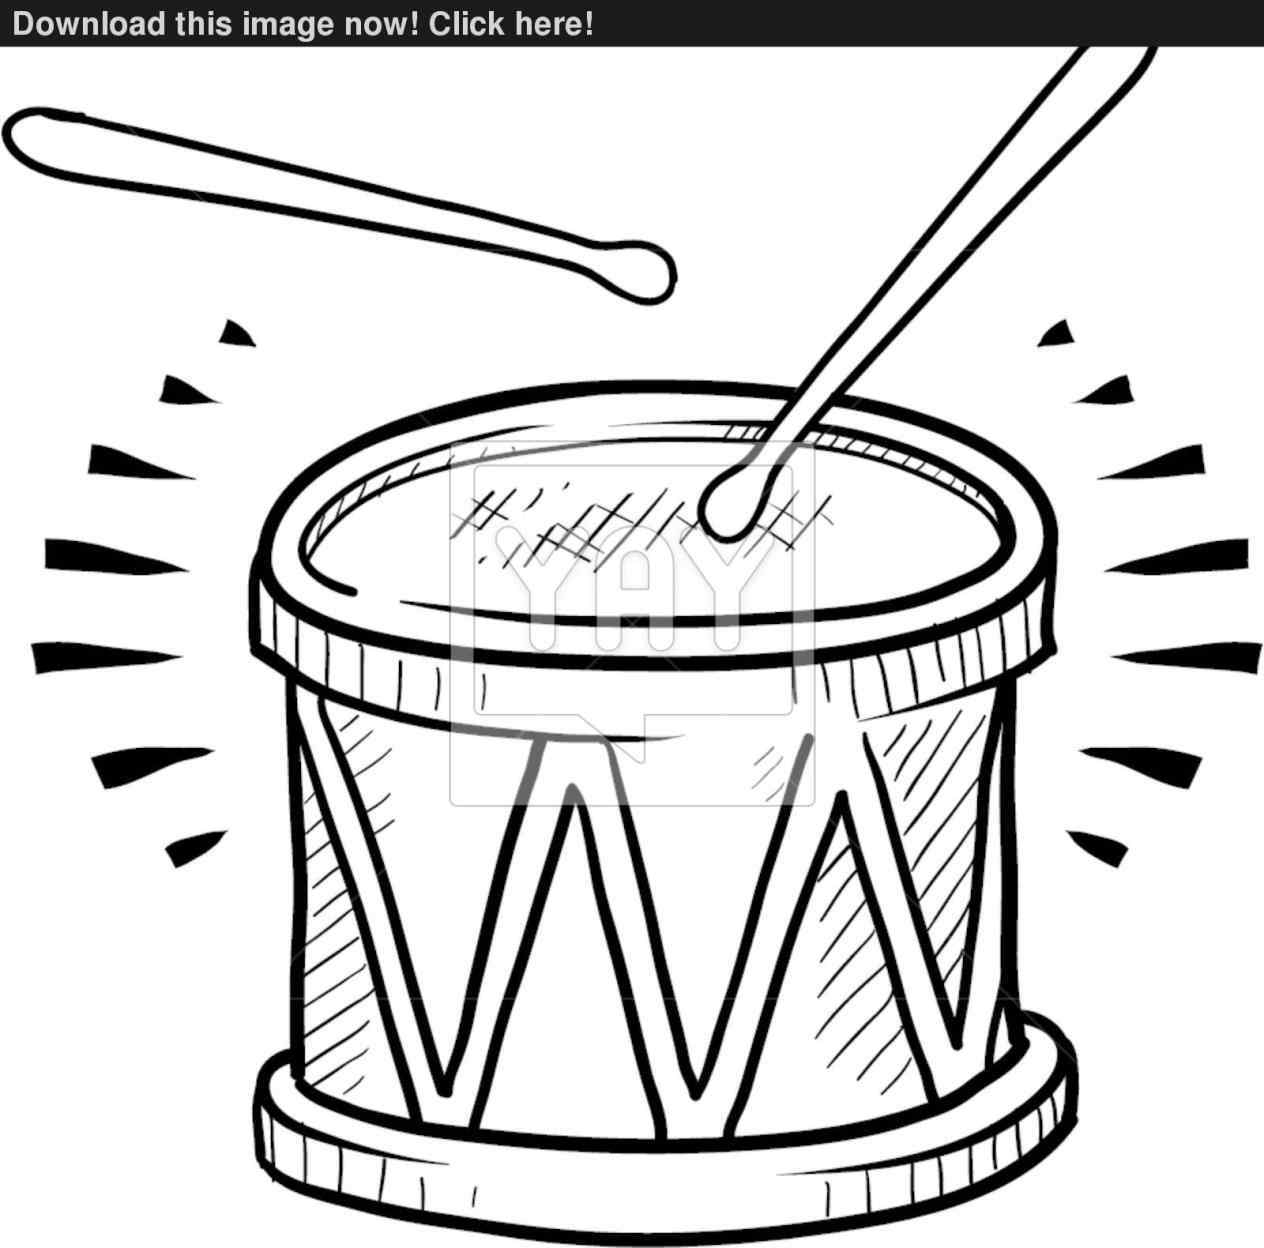 1264x1248 Snare Drum Drawing 2018